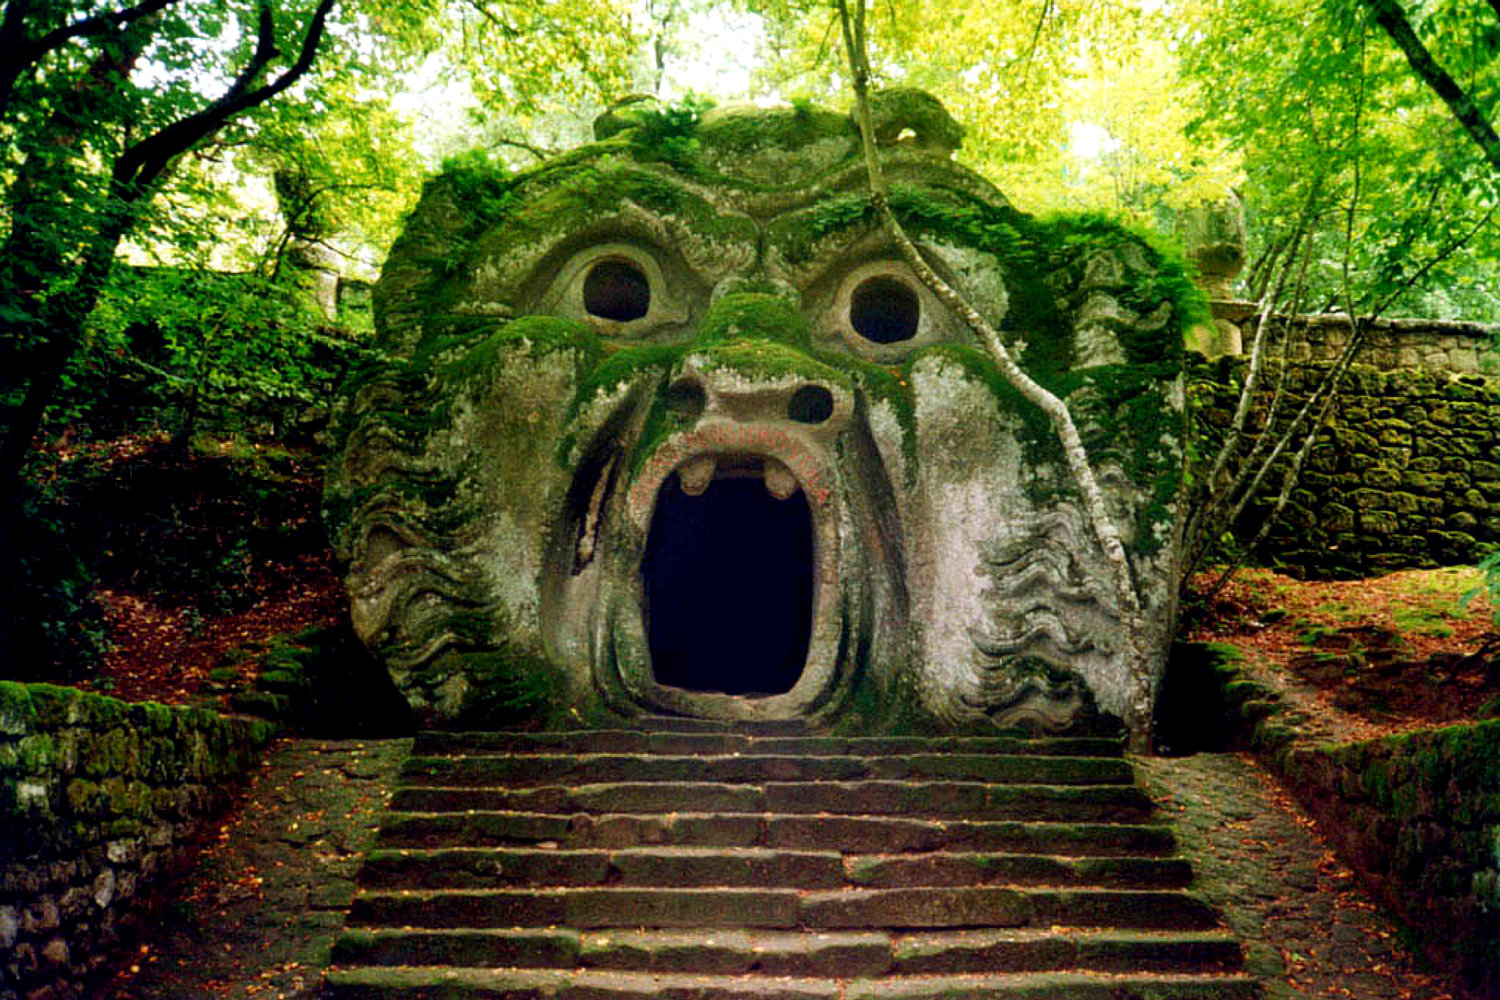 Monsters Park, Bomarzo